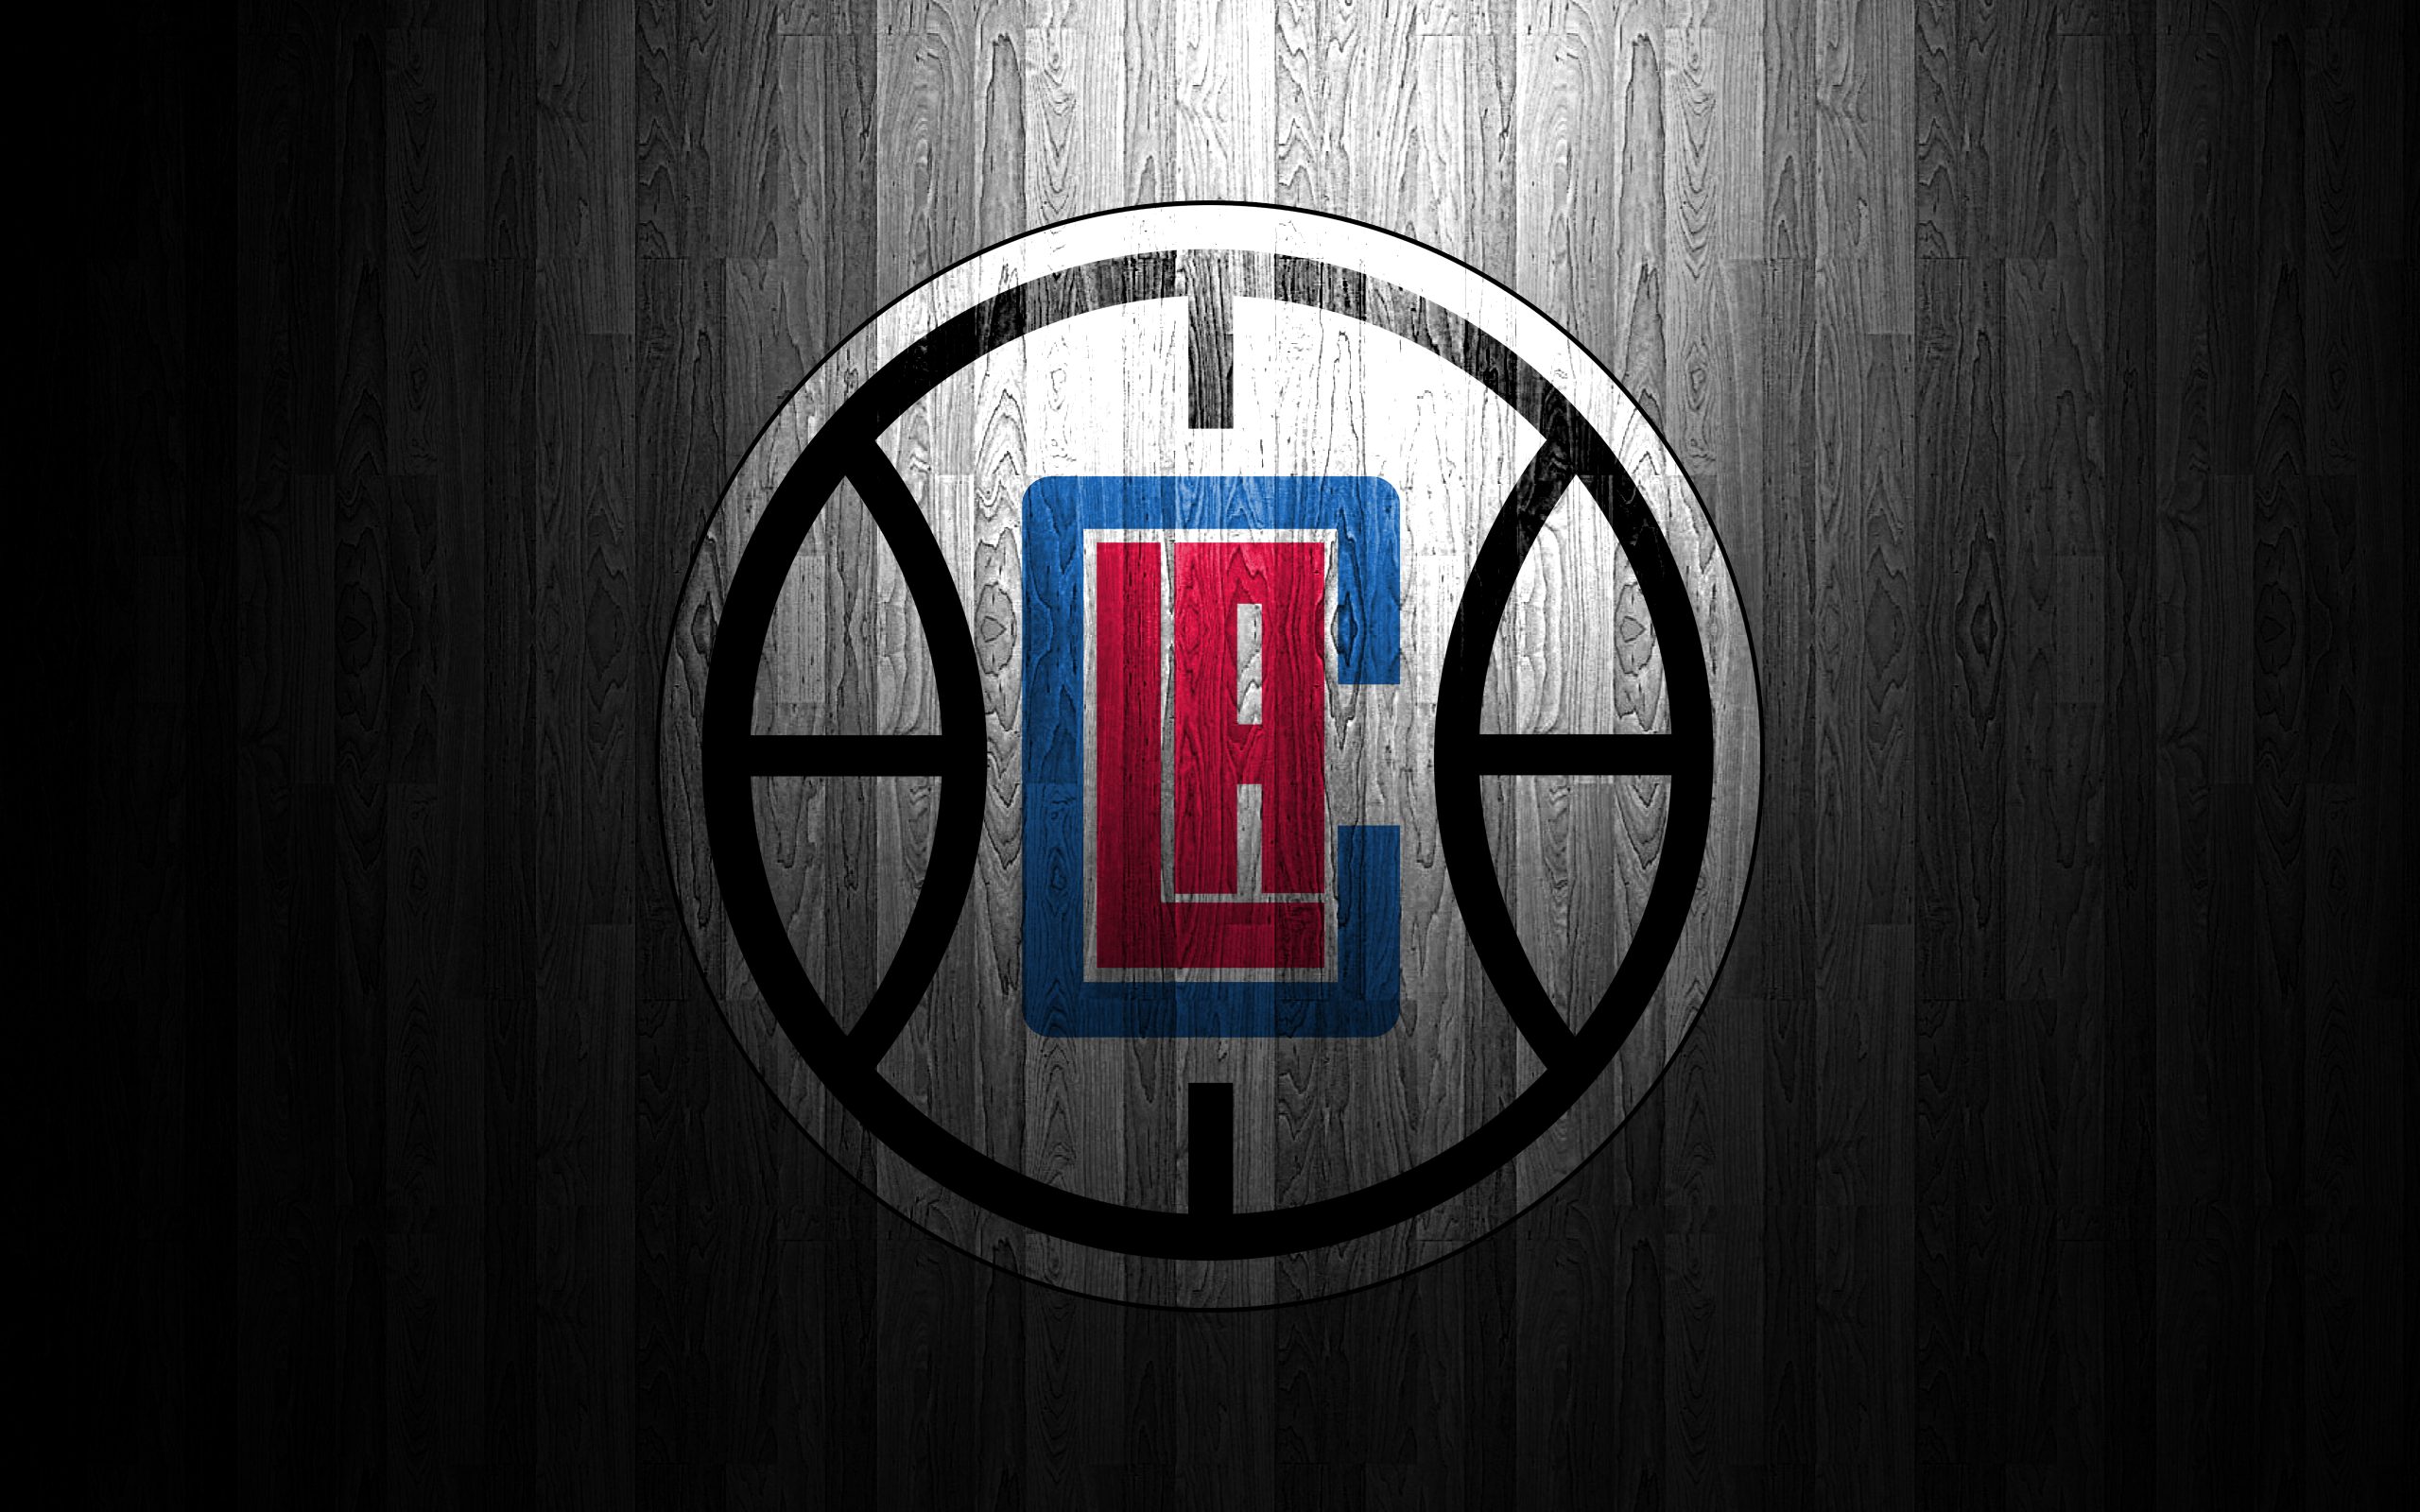 Los Angeles Clippers wallpapers HD 2016 in Basketball